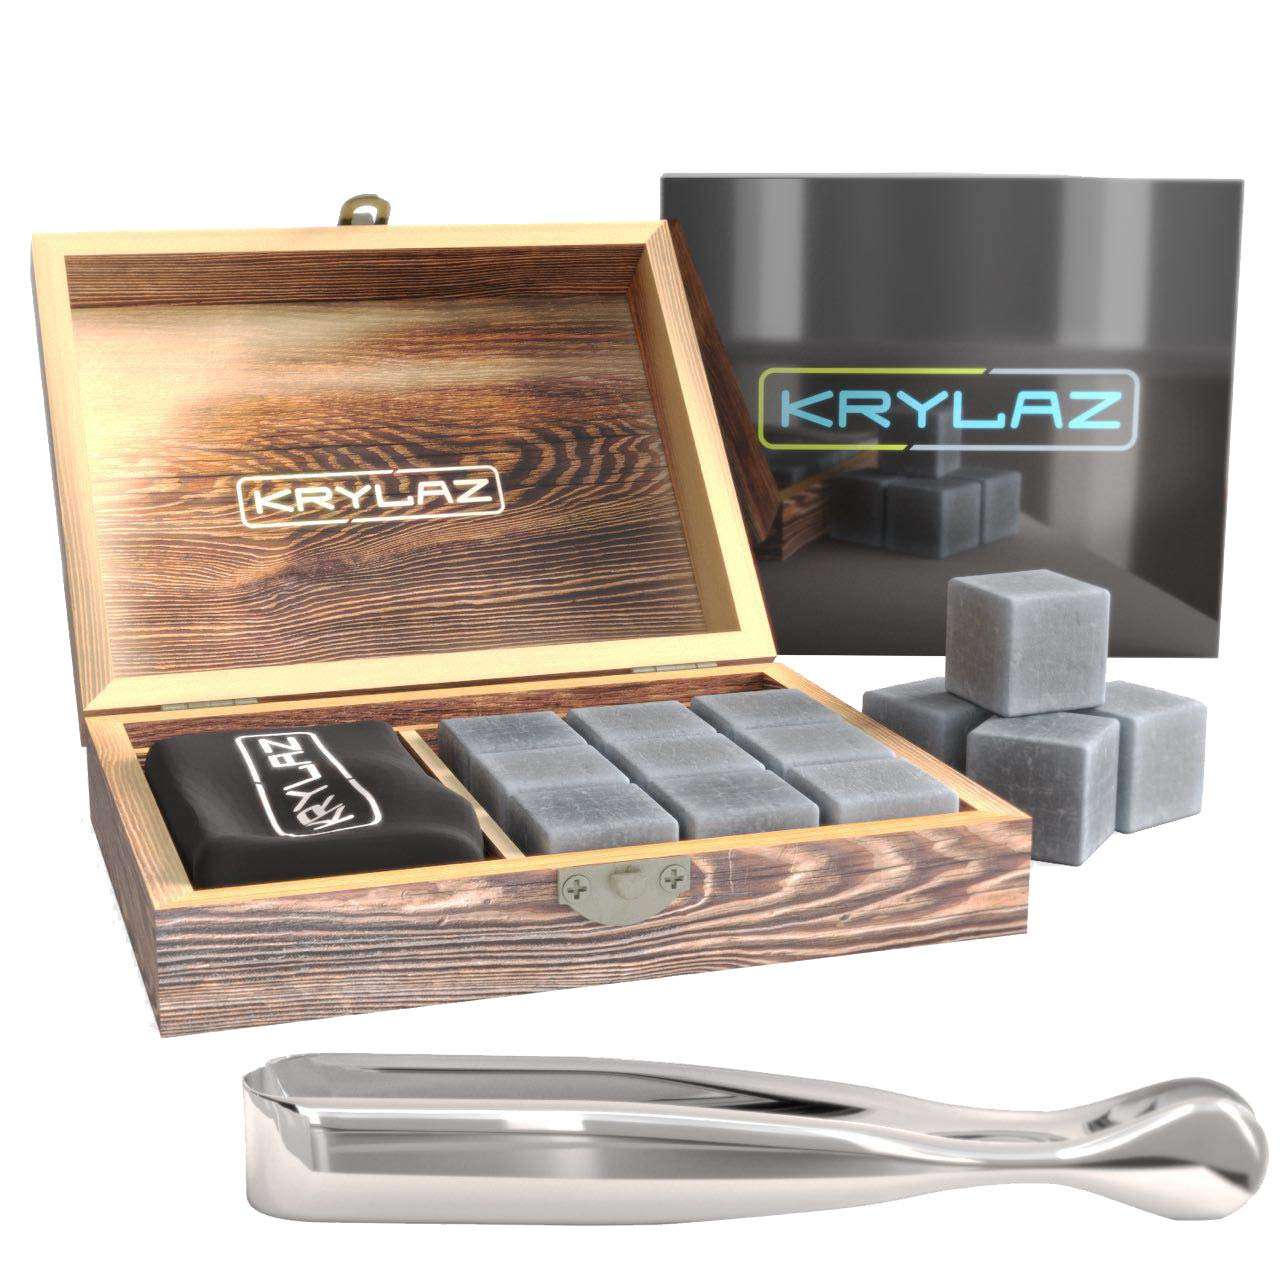 Whiskey Stones Gift Set for Men - Scotch Ice Rocks for Drinks - Chilling Stones Cubes Set in Box with 9 Pack Whisky Stones and Tongs Krylaz